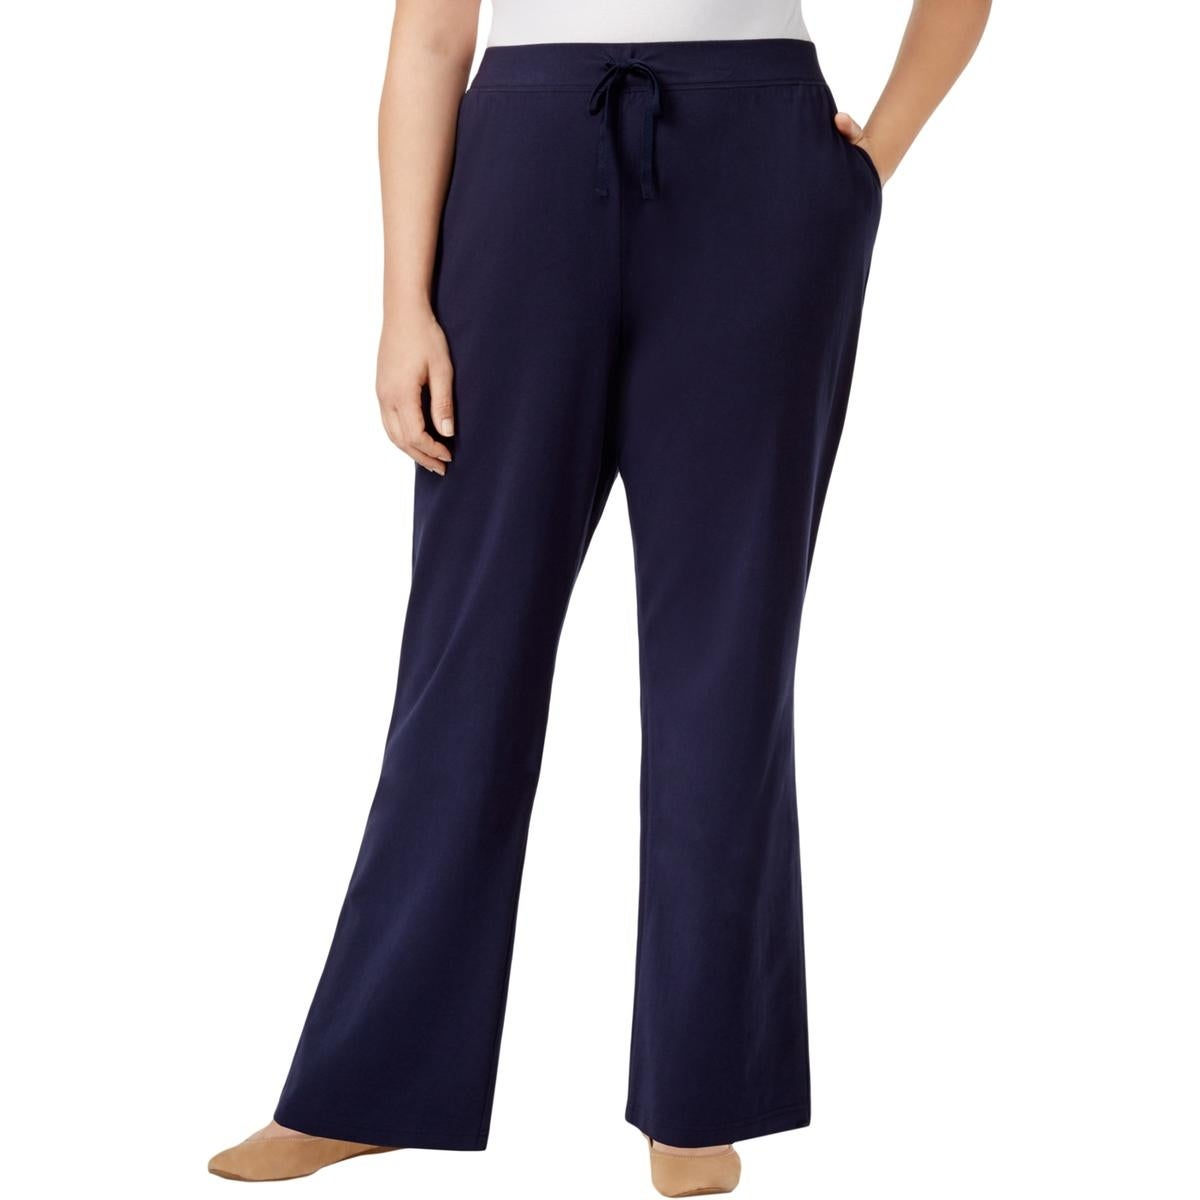 59bfa7cc55ae3 Shop Karen Scott Womens Plus Athletic Pants Fitness Running - Free Shipping  On Orders Over  45 - Overstock.com - 24302164